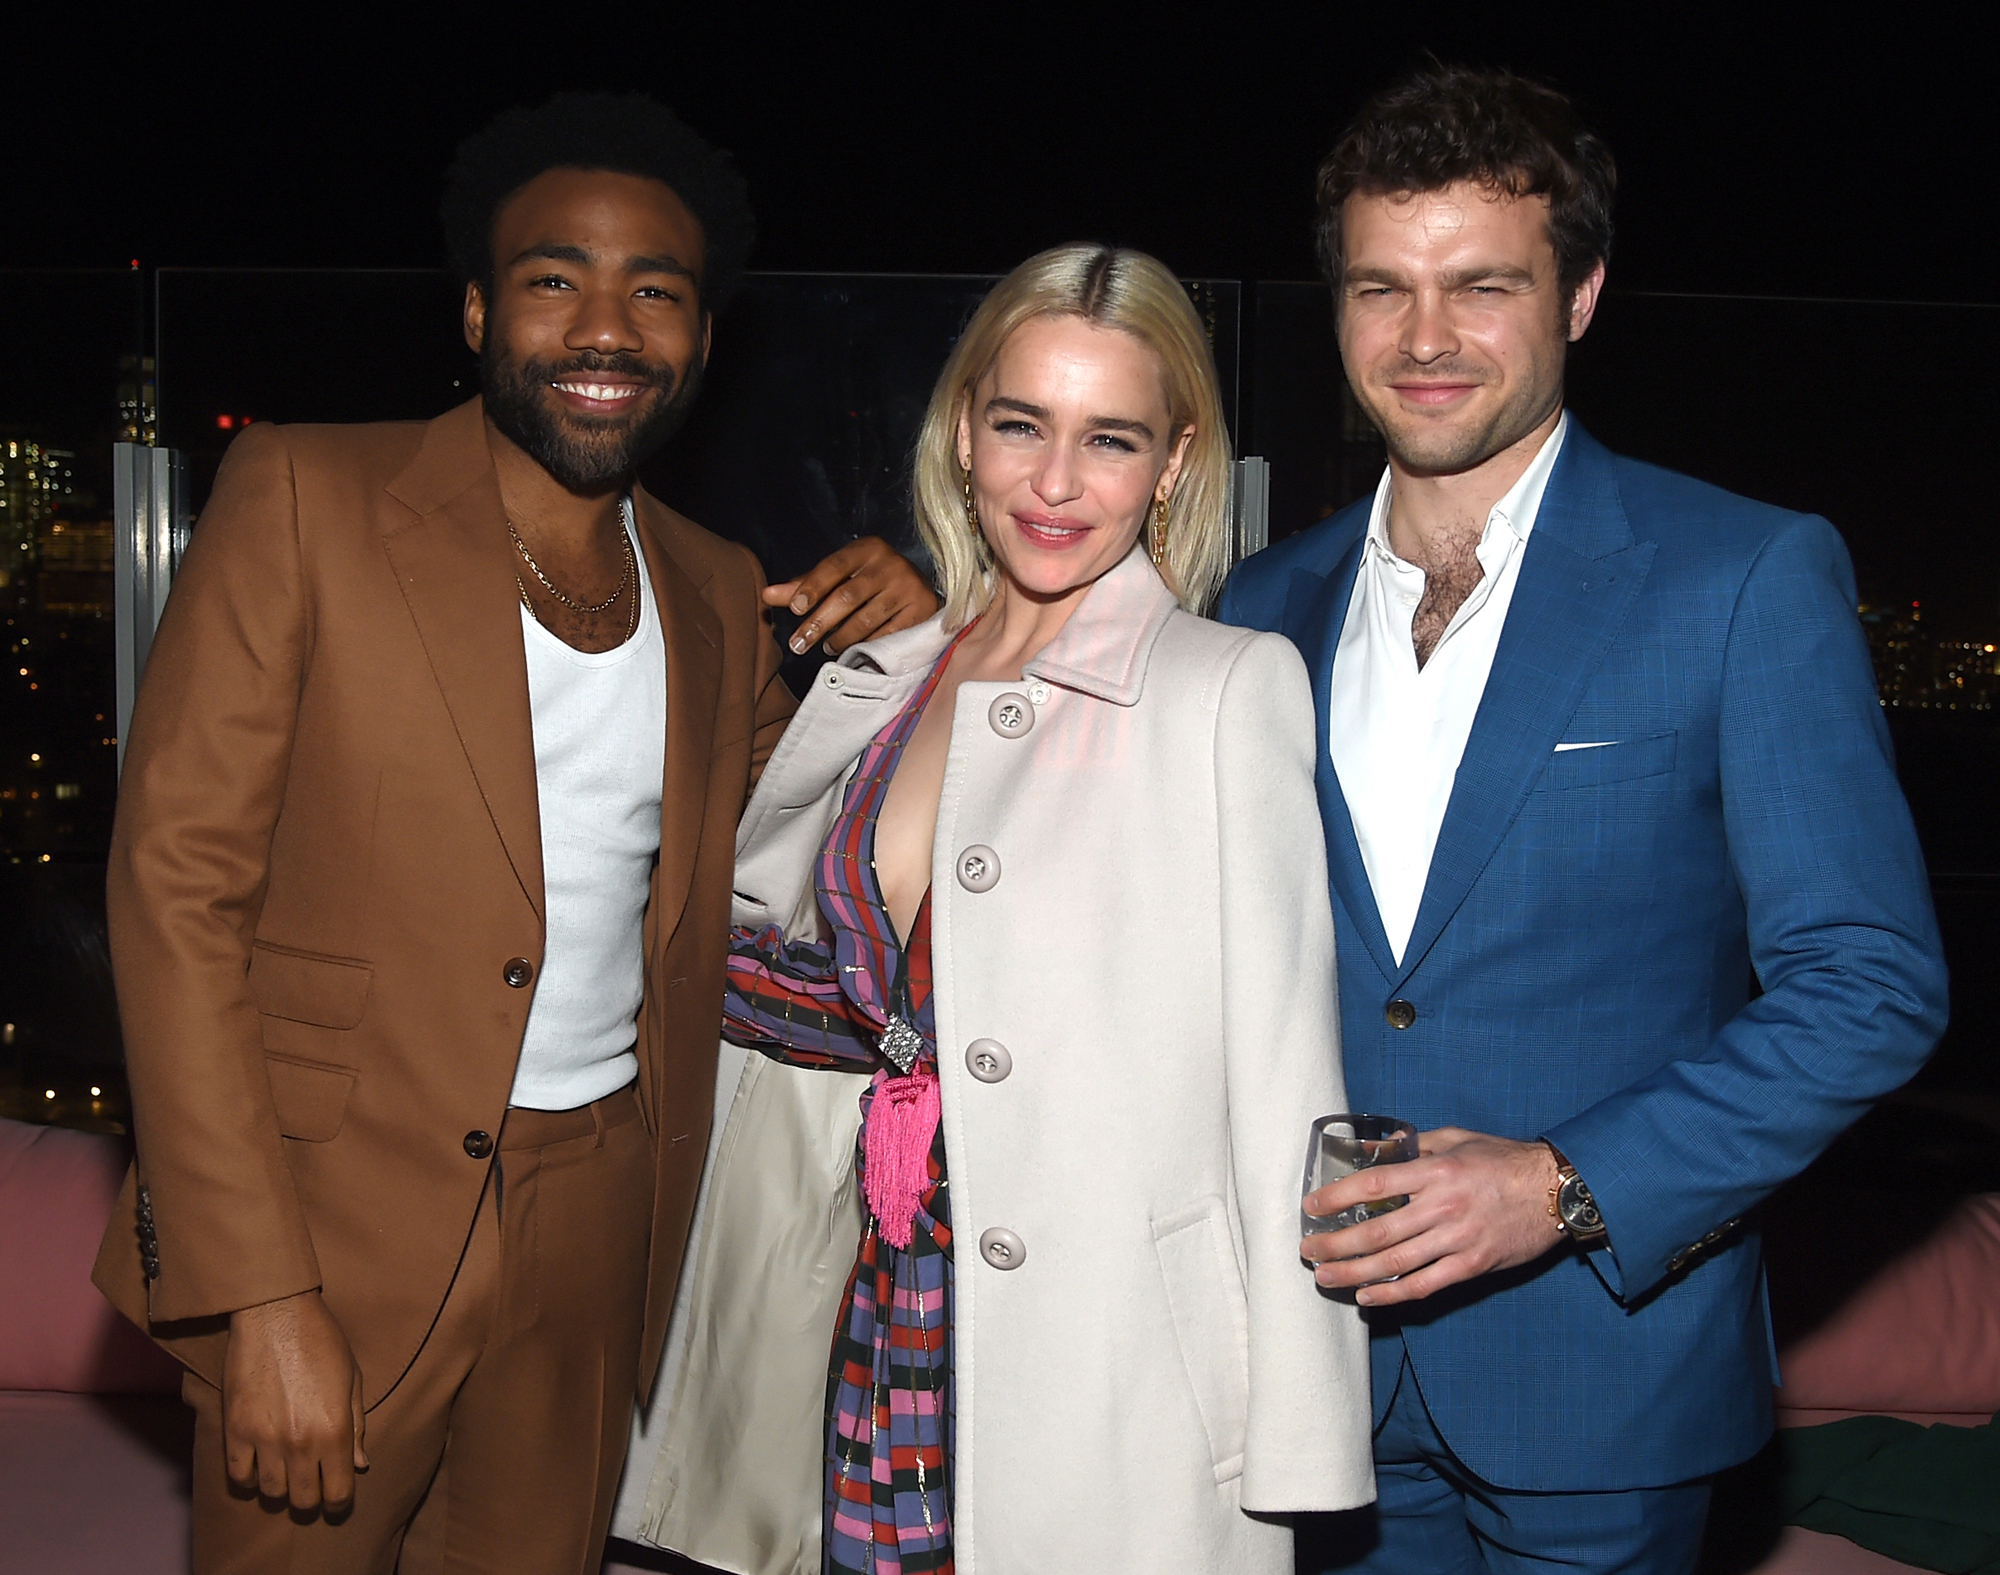 <p>Donald Glover, Emilia Clarke, and Alden Ehrenreich</p>